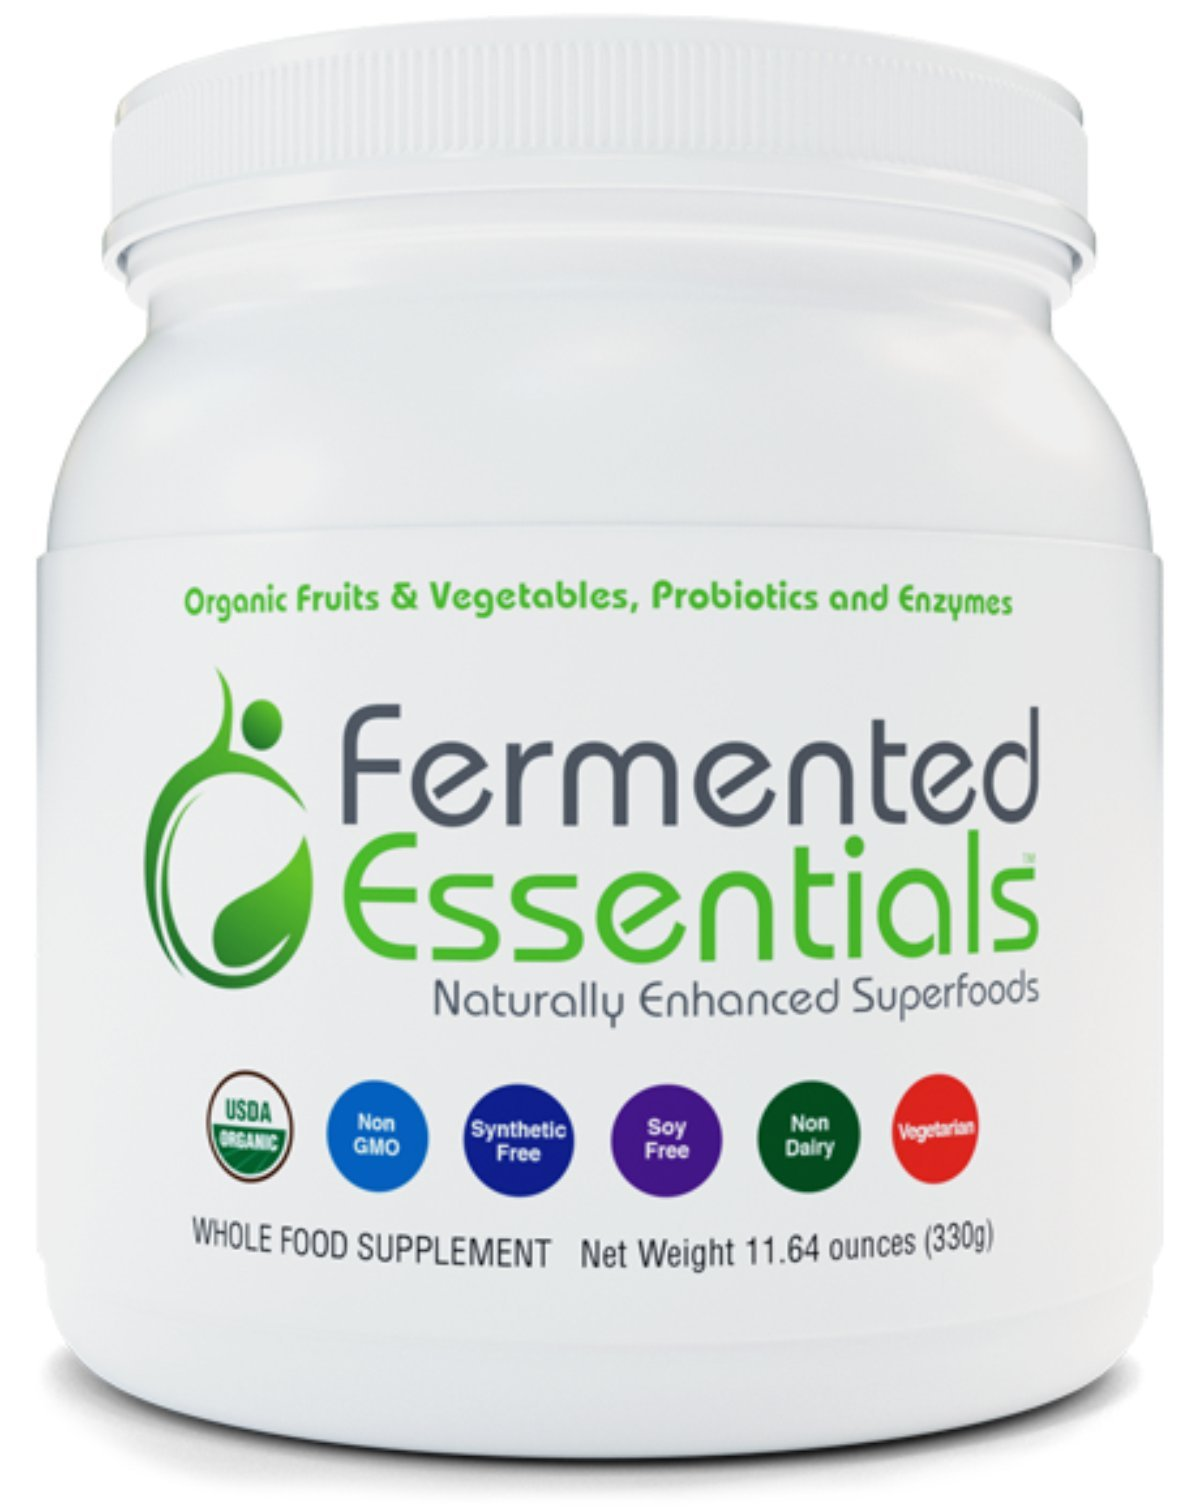 Fermented Essentials ™ - Naturally Enhanced Superfoods (330g) World's First Organic, Fermented Whole-Food Supplement